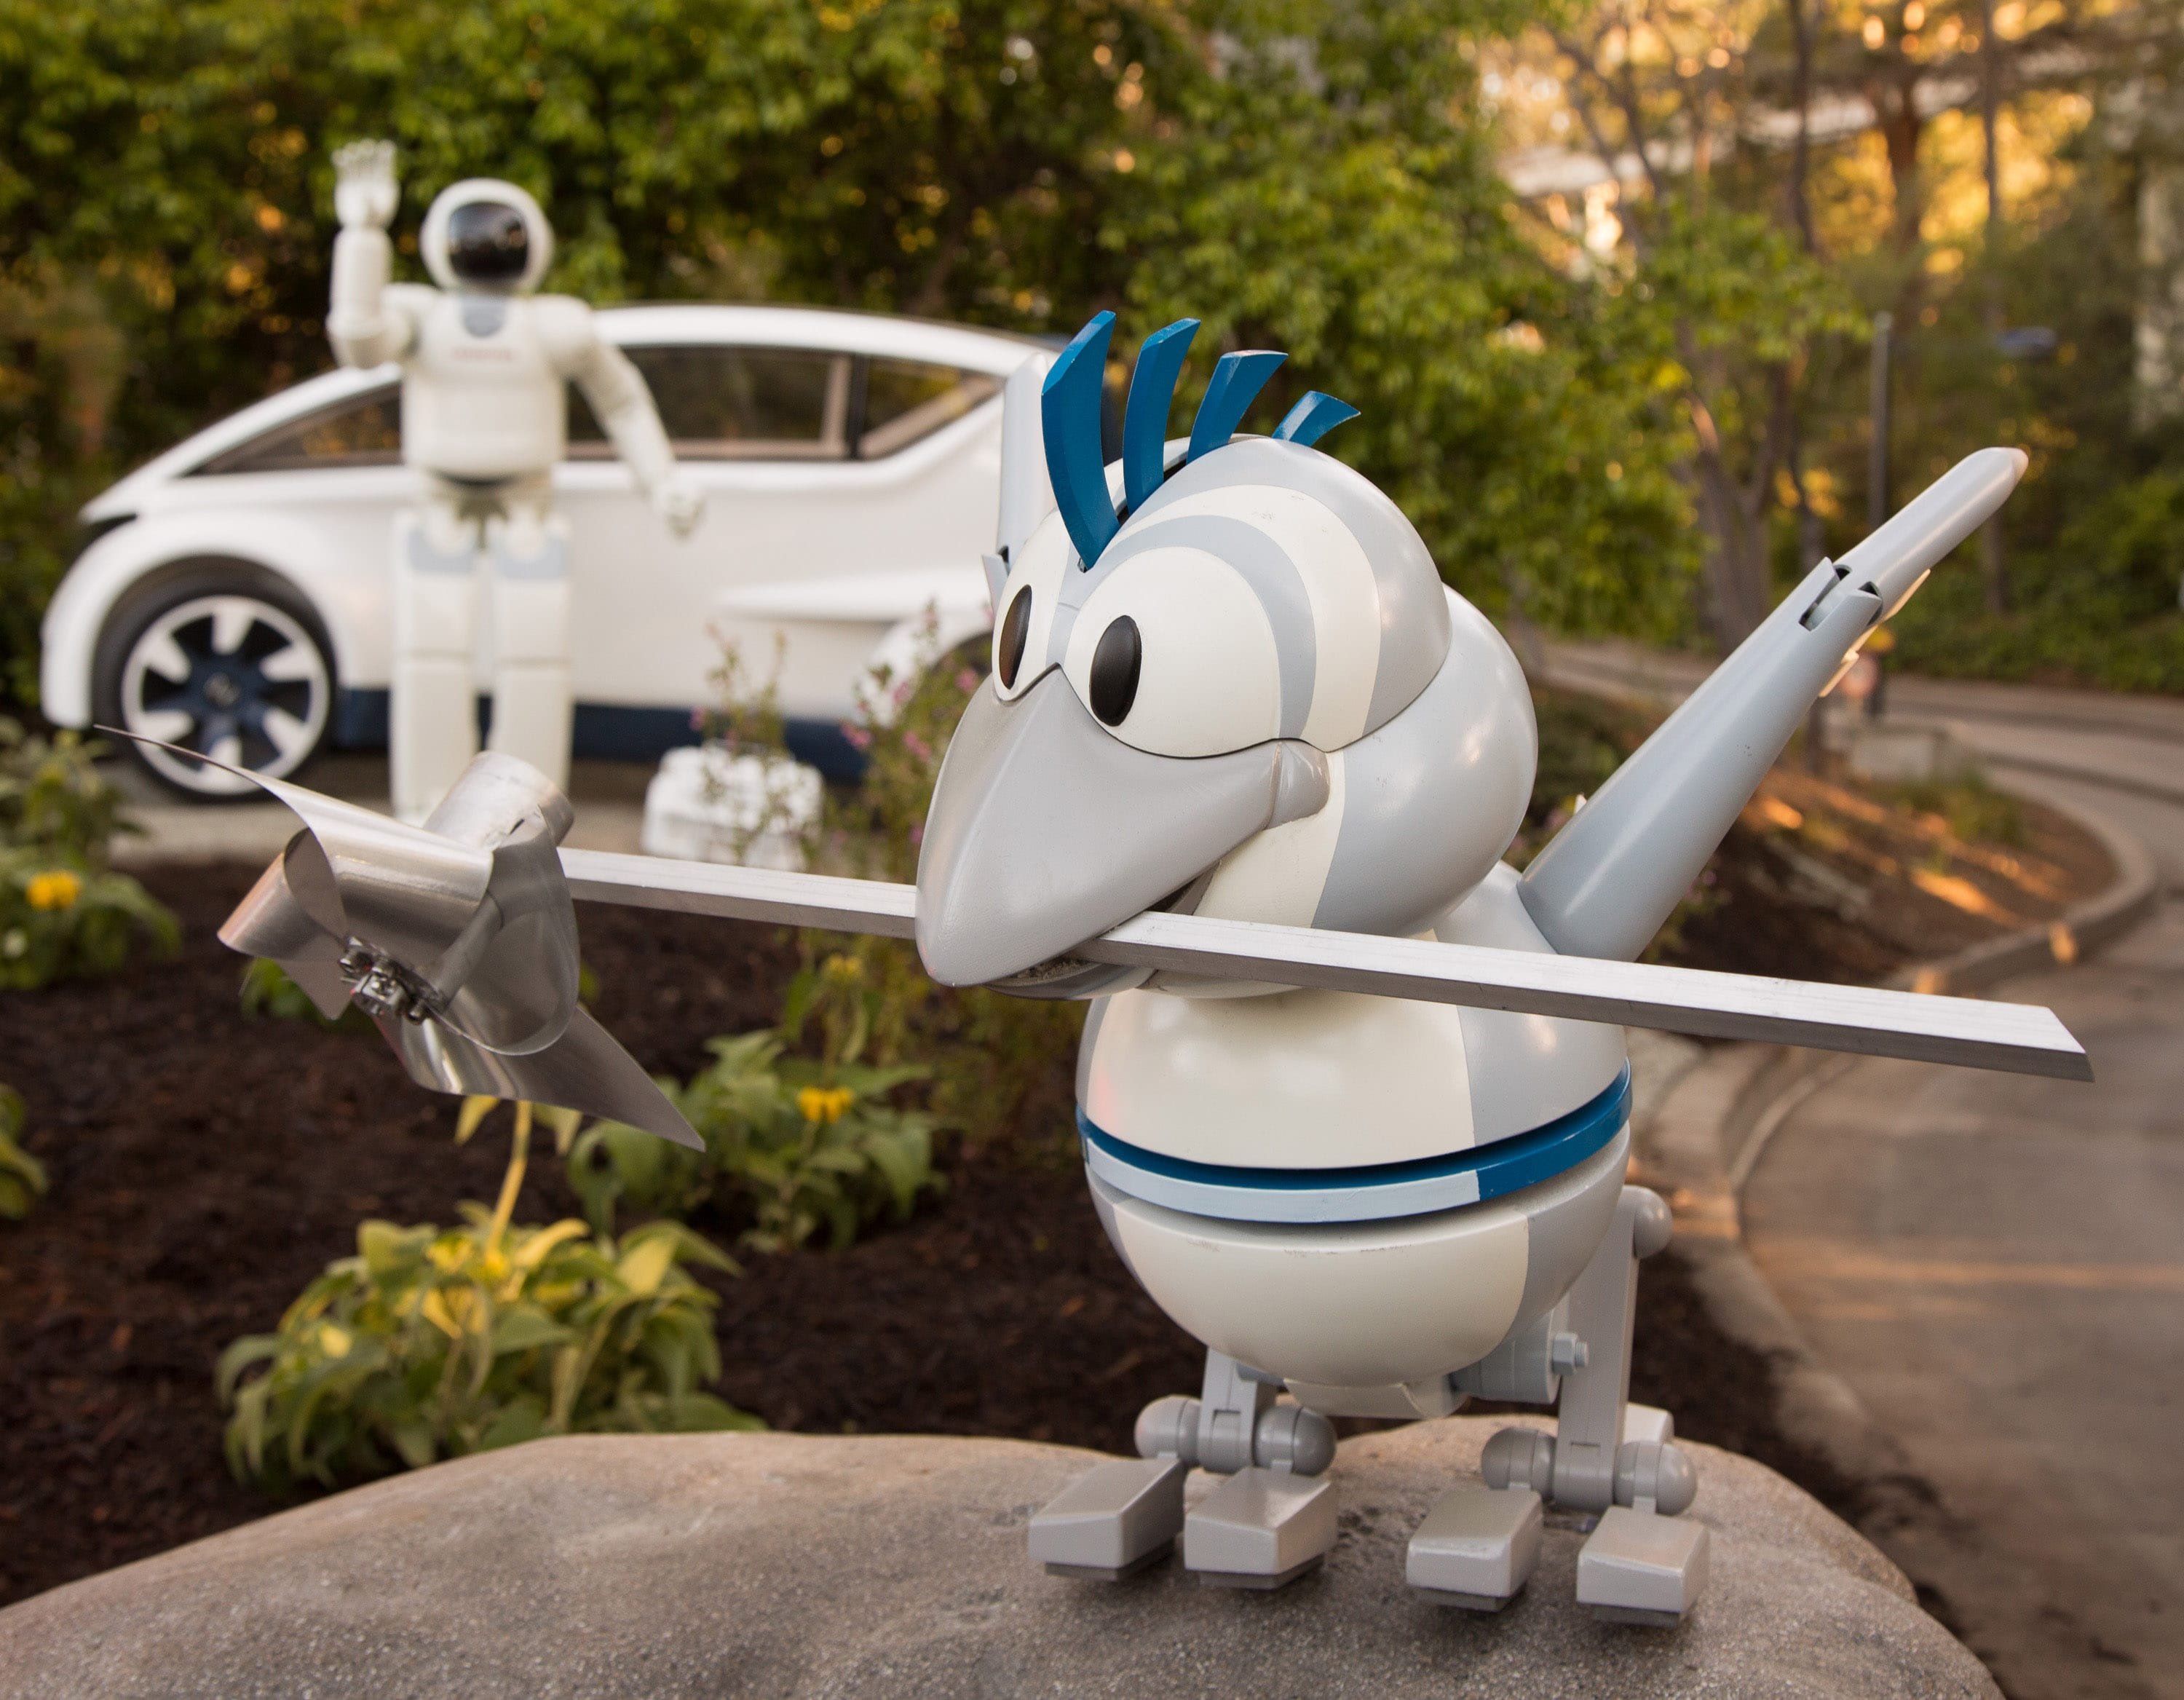 Autopia Enhancements with ASIMO - Disneyland